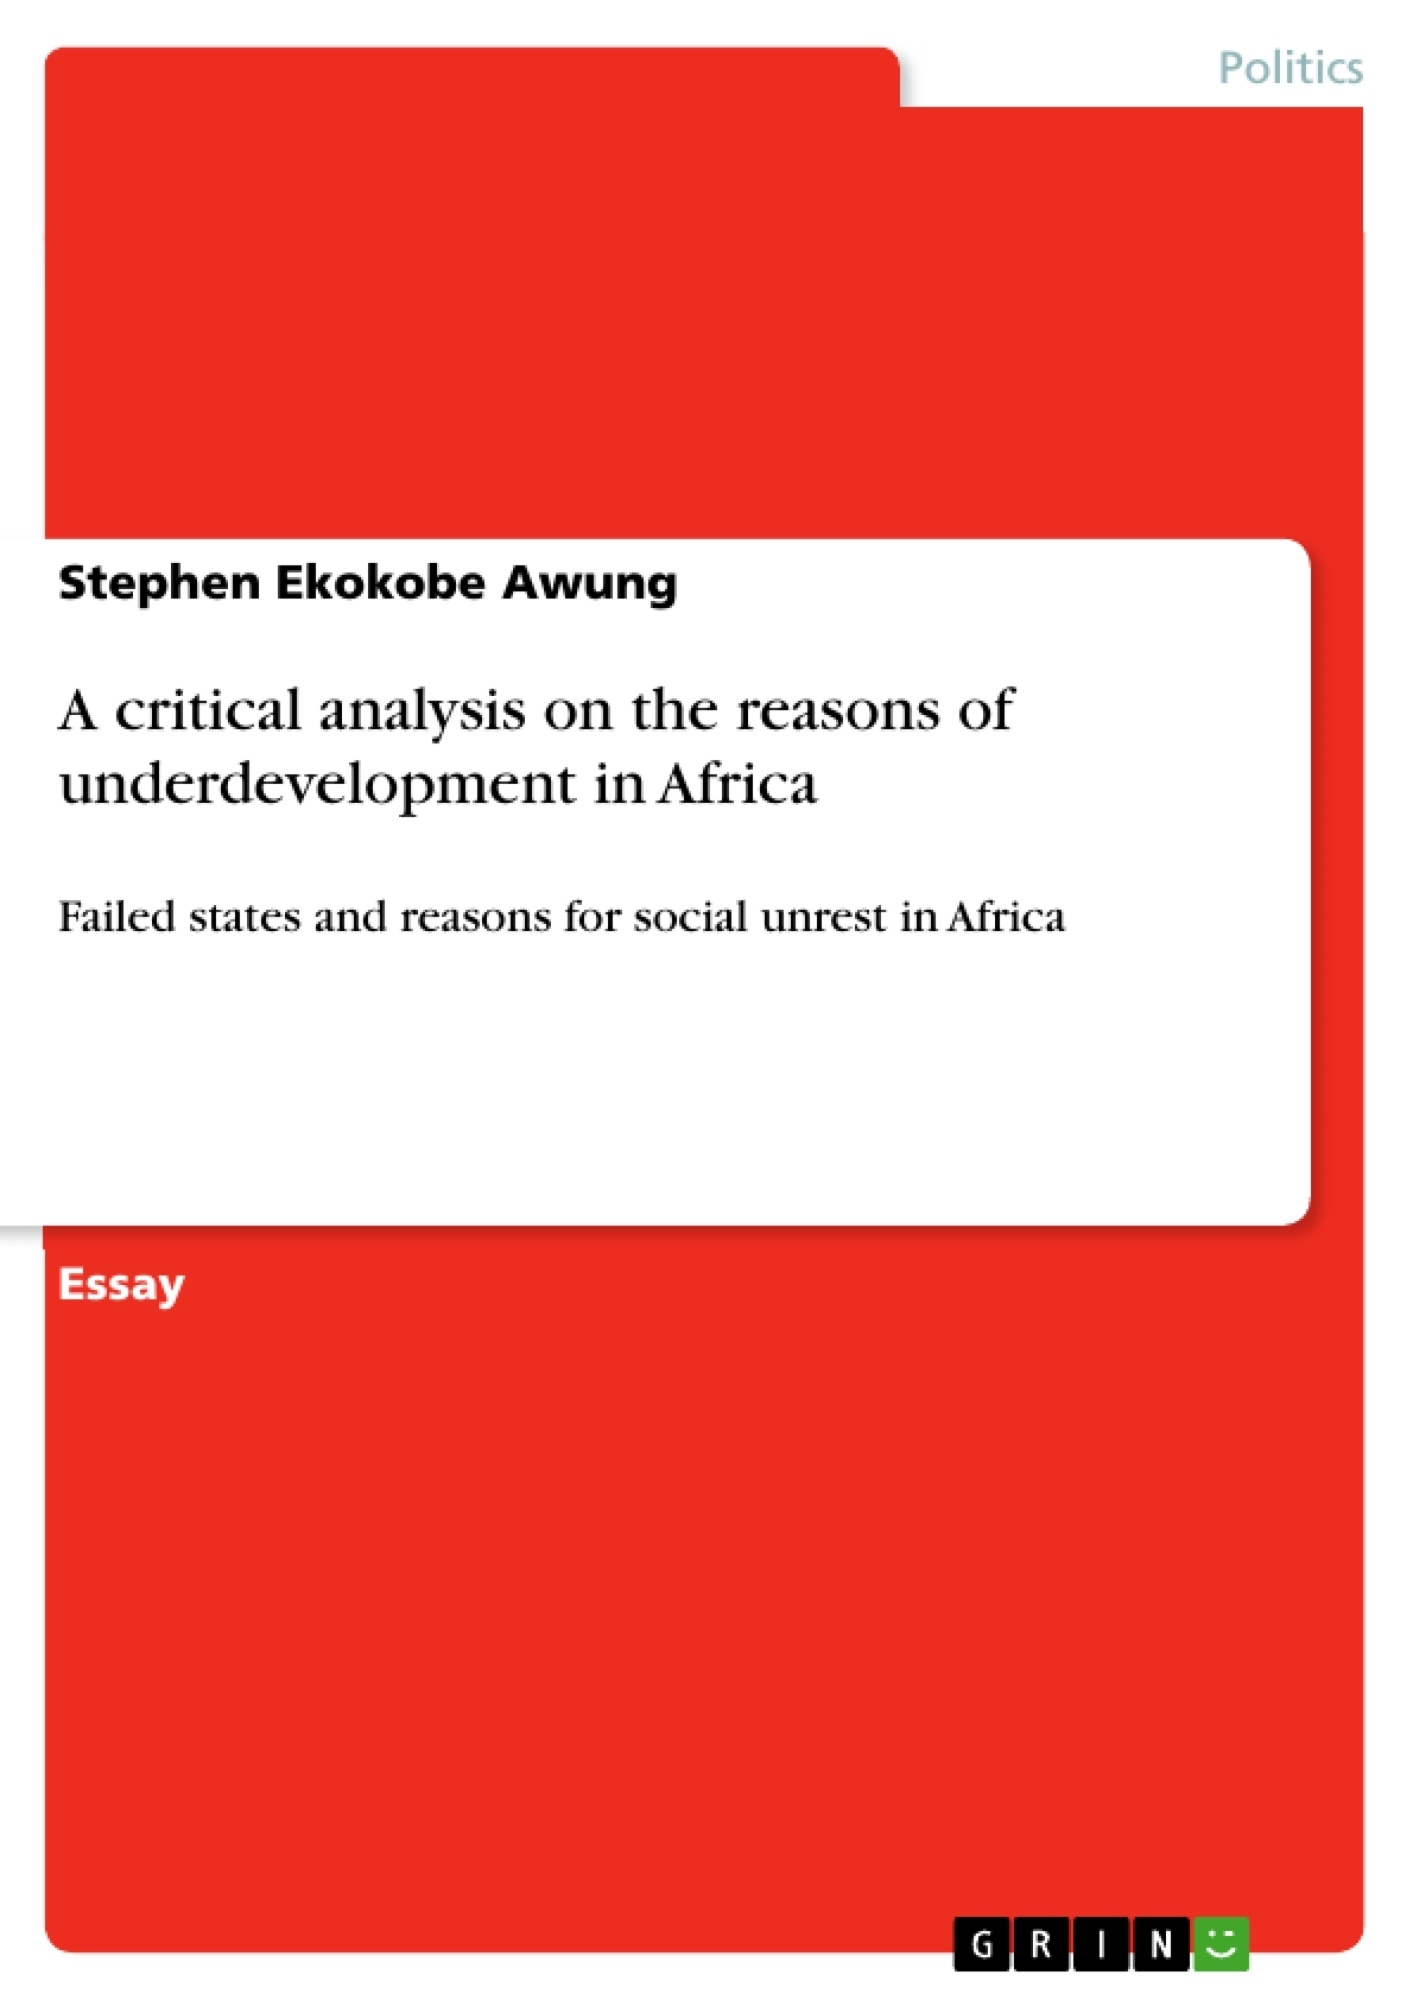 a critical analysis on the reasons of underdevelopment in africa upload your own papers earn money and win an iphone 7